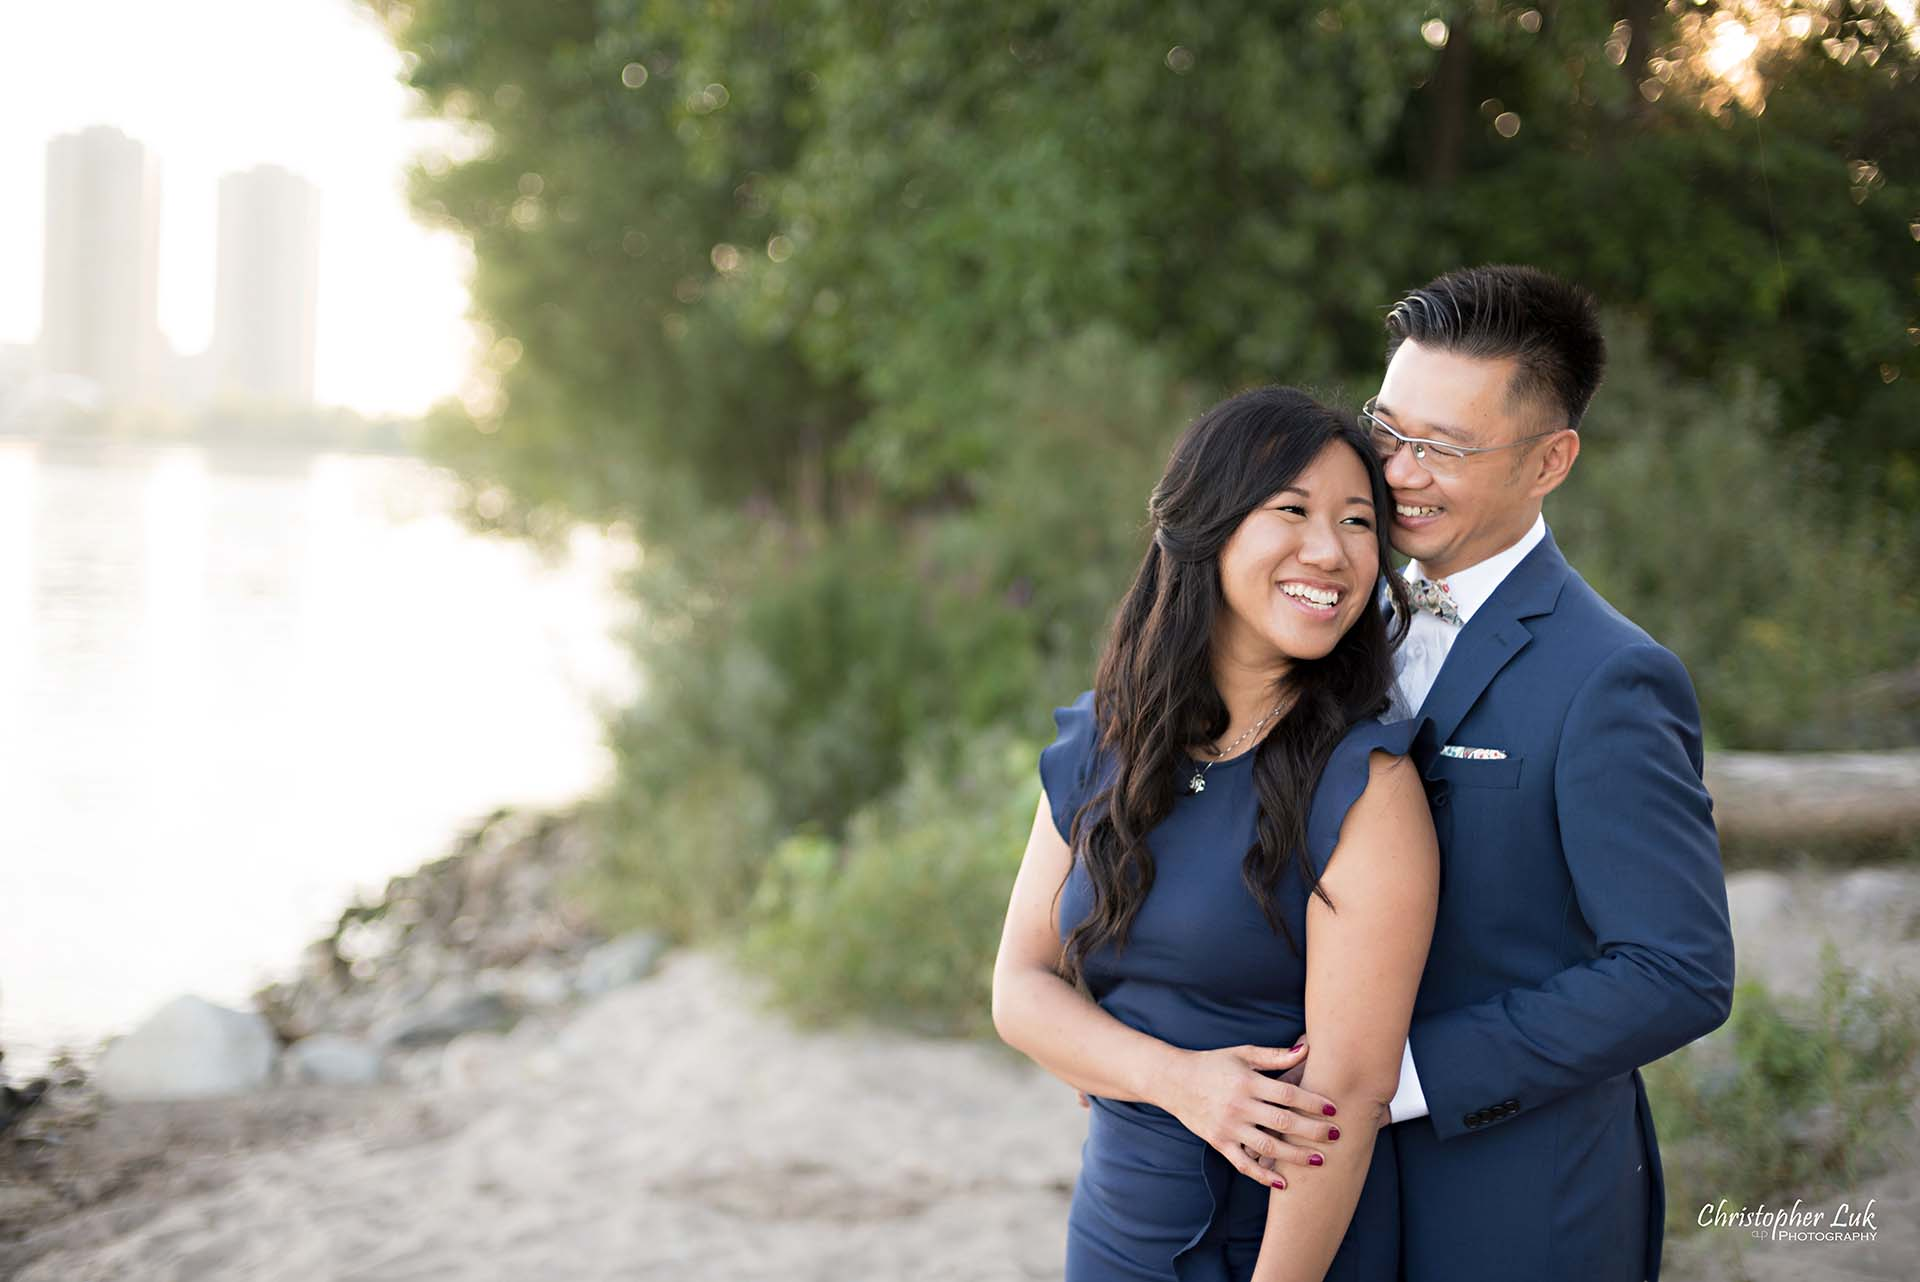 Clarise And Isaac S Engagement Session Sunnyside Pavilion Boardwalk Beach Park Toronto Wedding Photographer